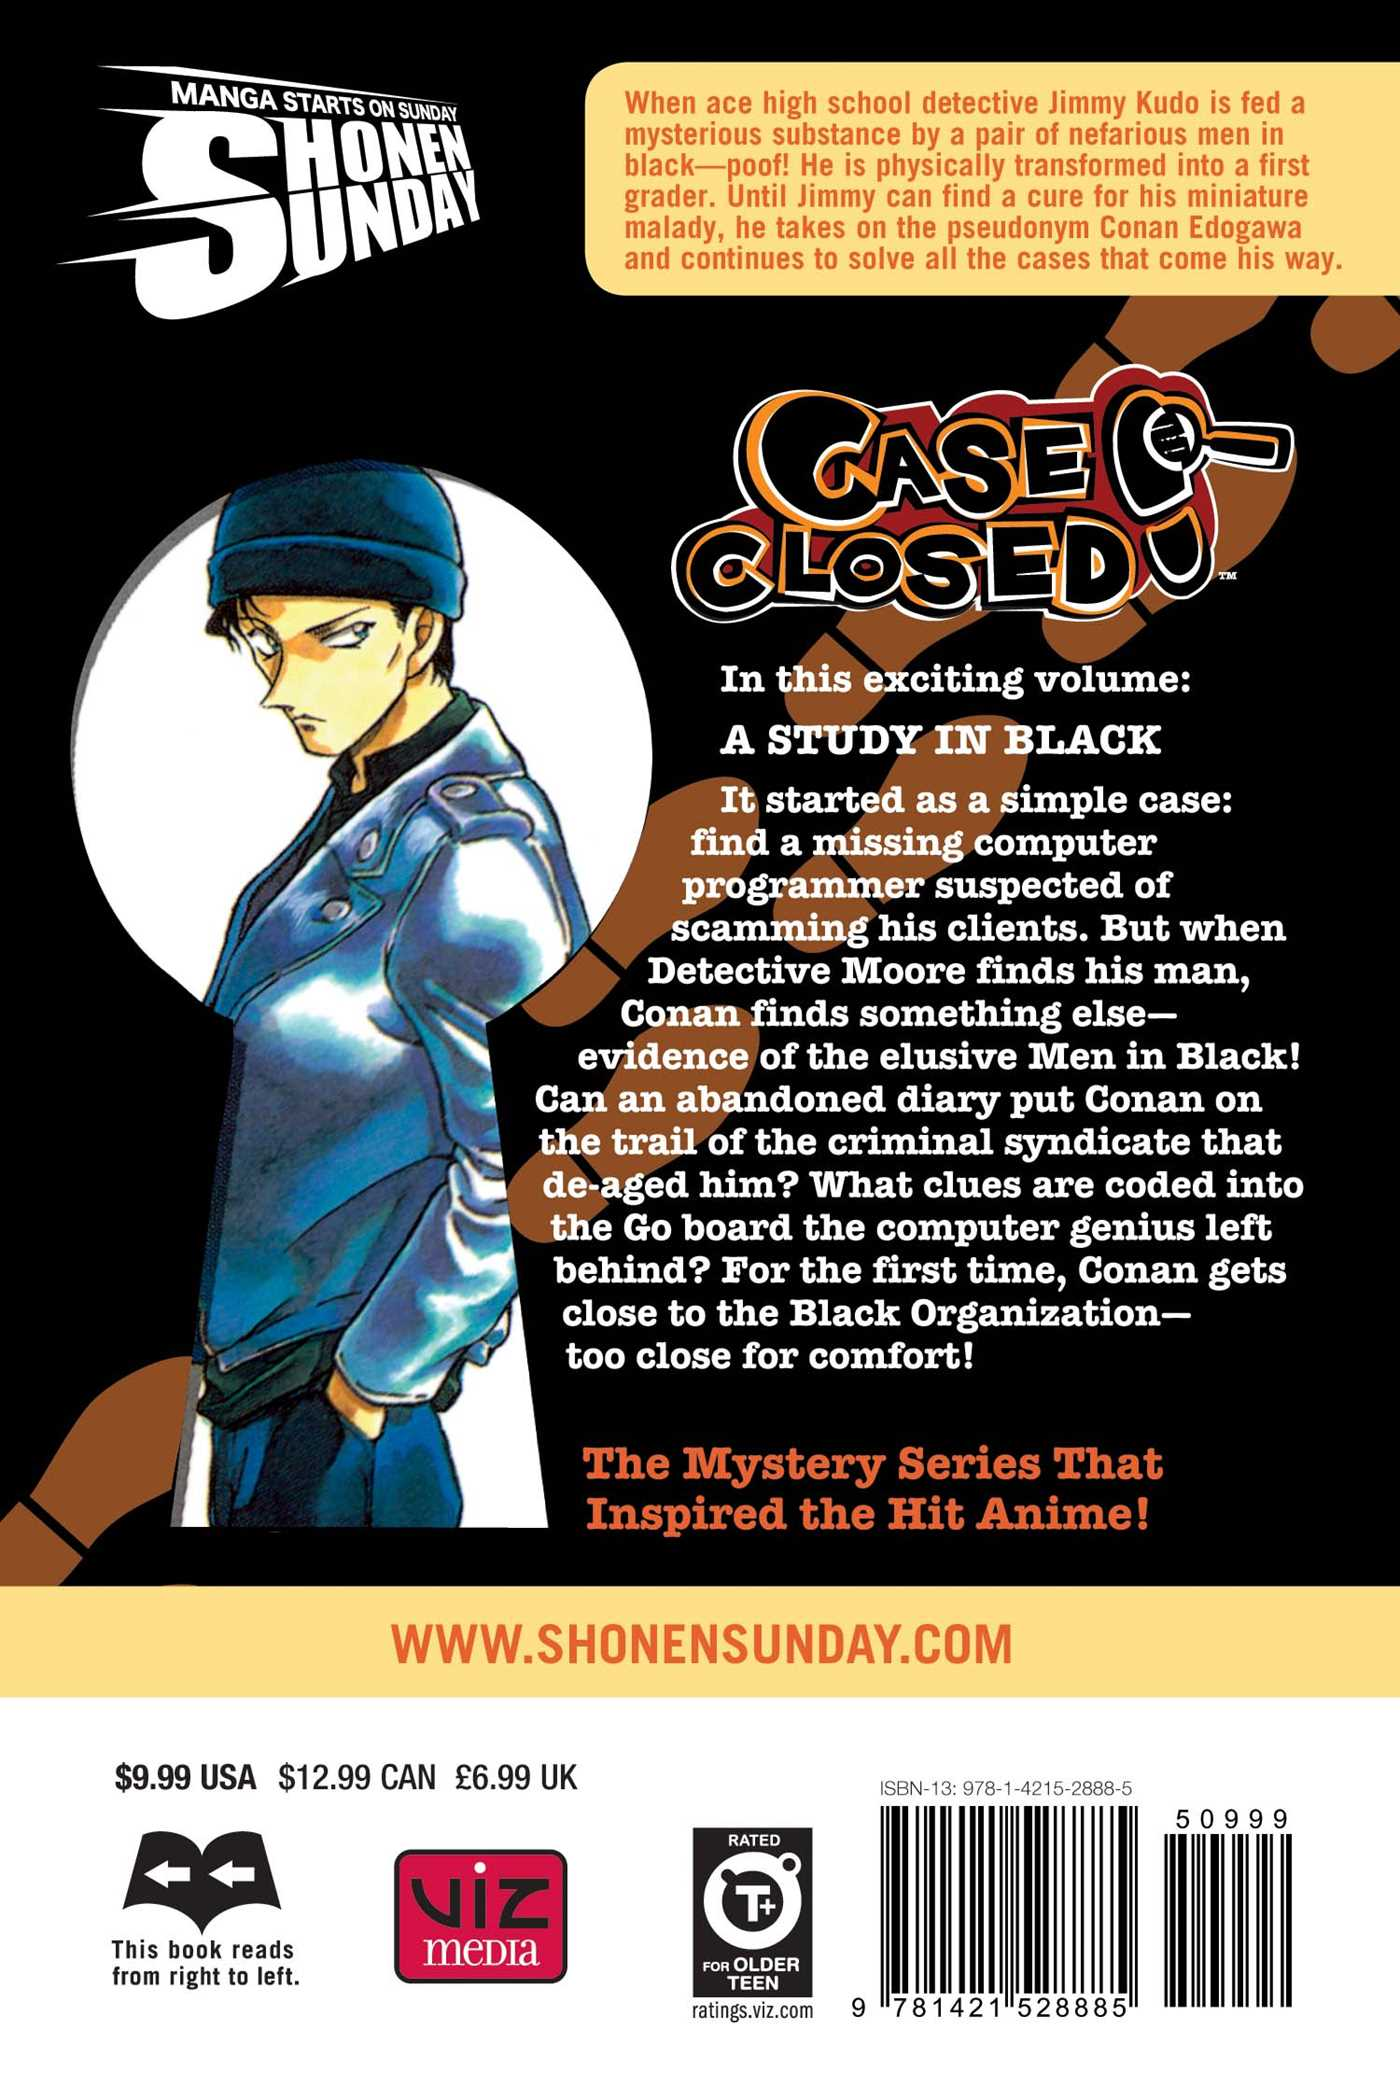 Case closed vol 37 9781421528885 hr back